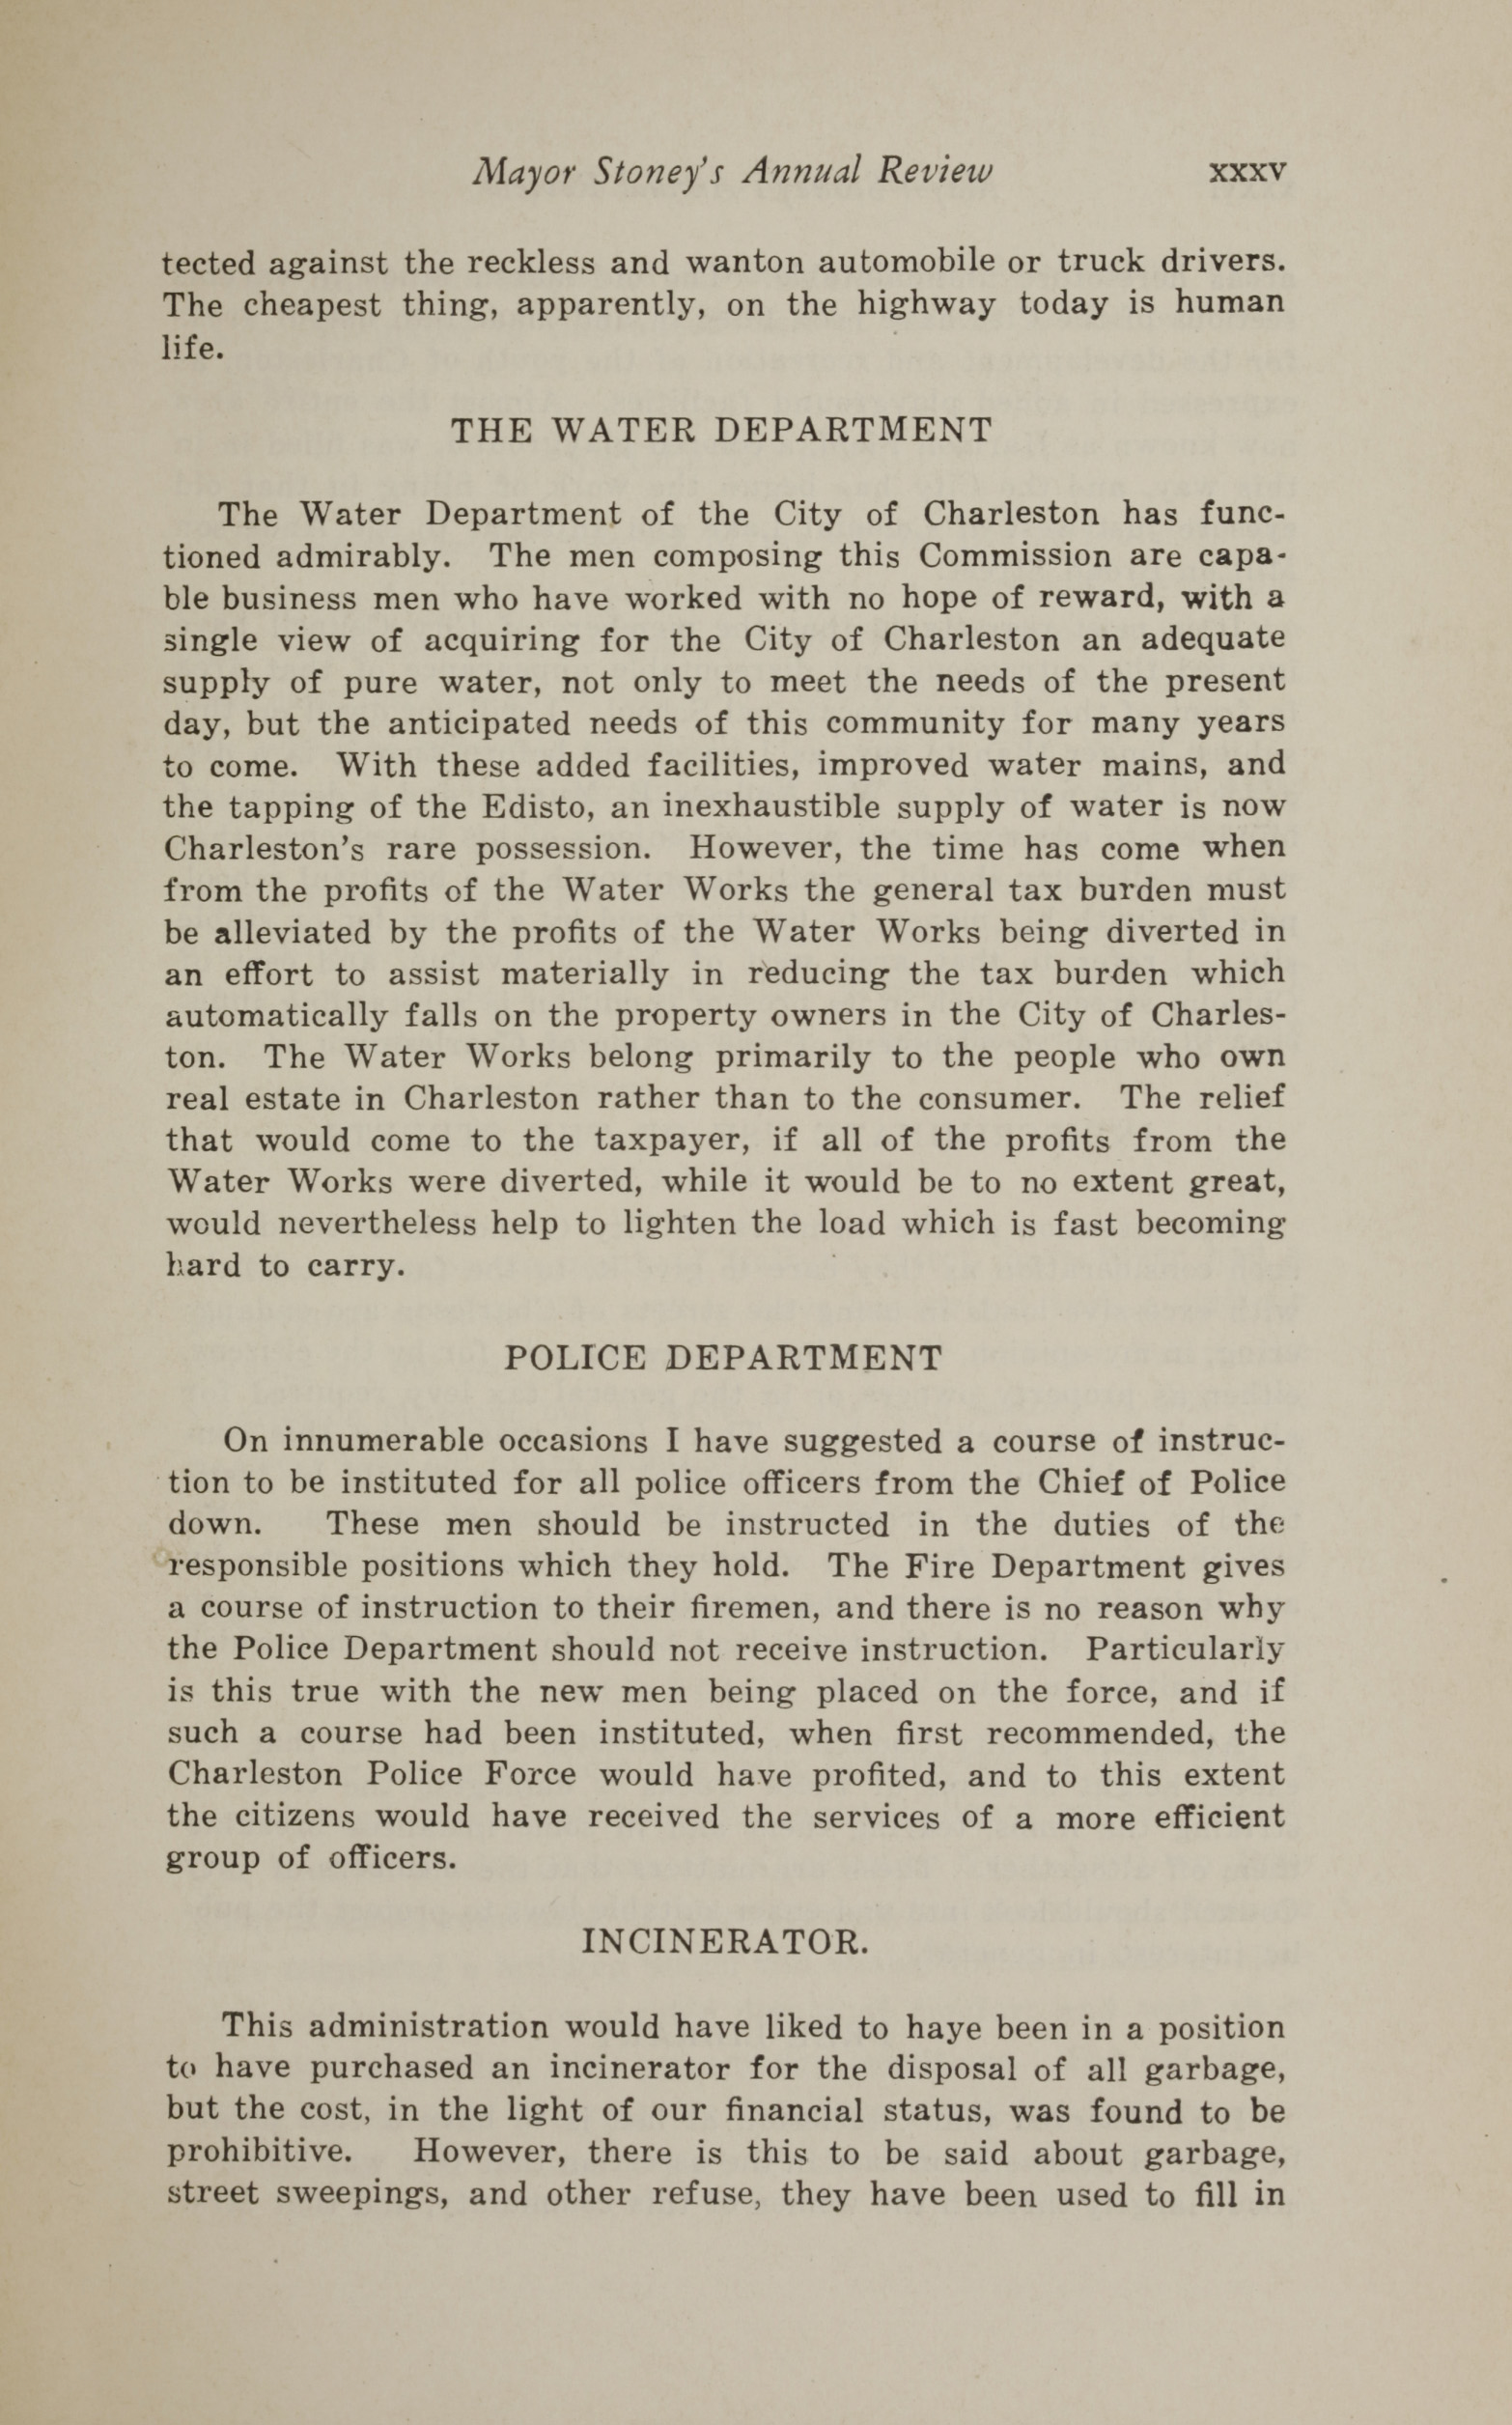 Charleston Yearbook, 1930, page xxxv